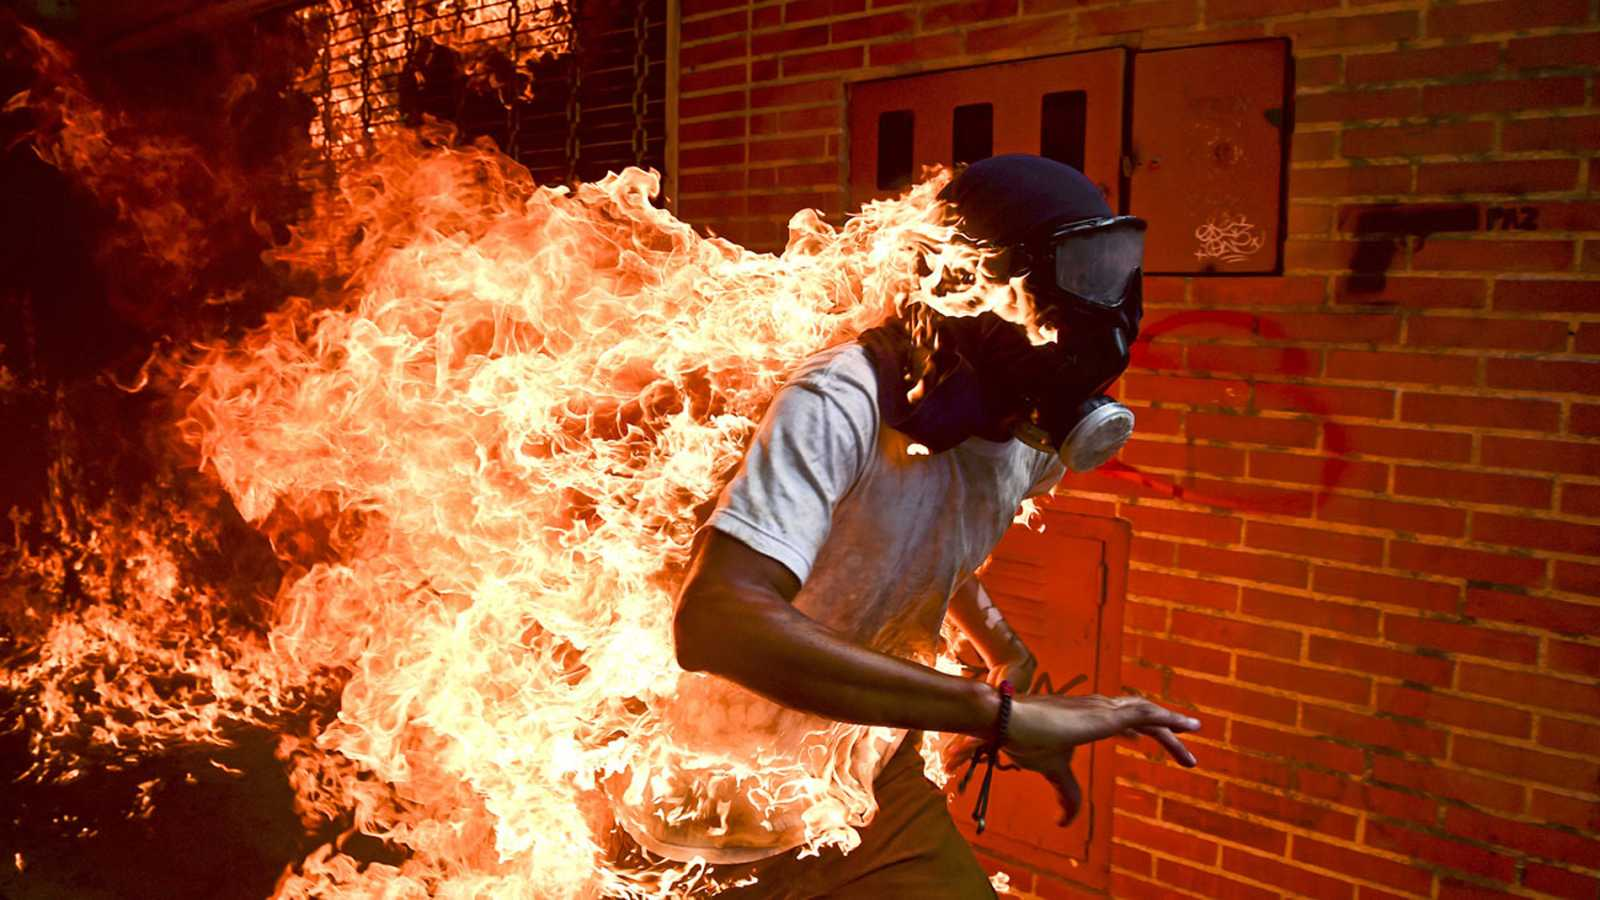 Las seis fotos de las que saldrá el premio World Press Photo 2017